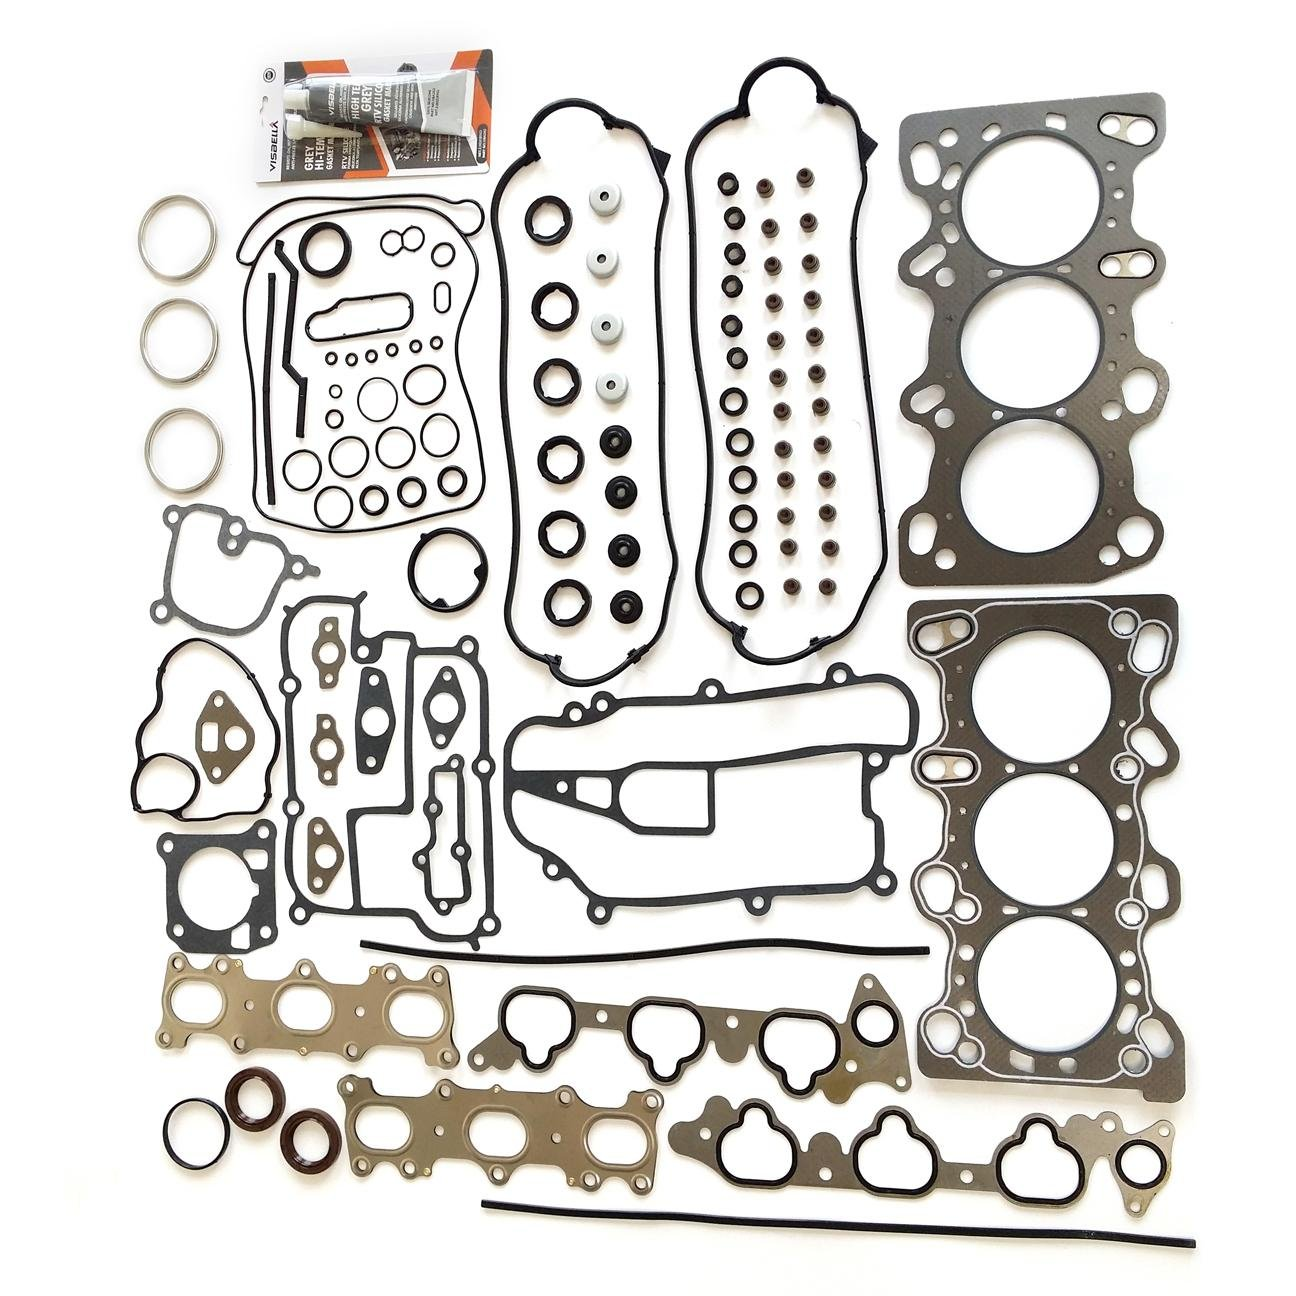 SKP HS9031PT1 Head Gasket Set, 1 Pack by SKP